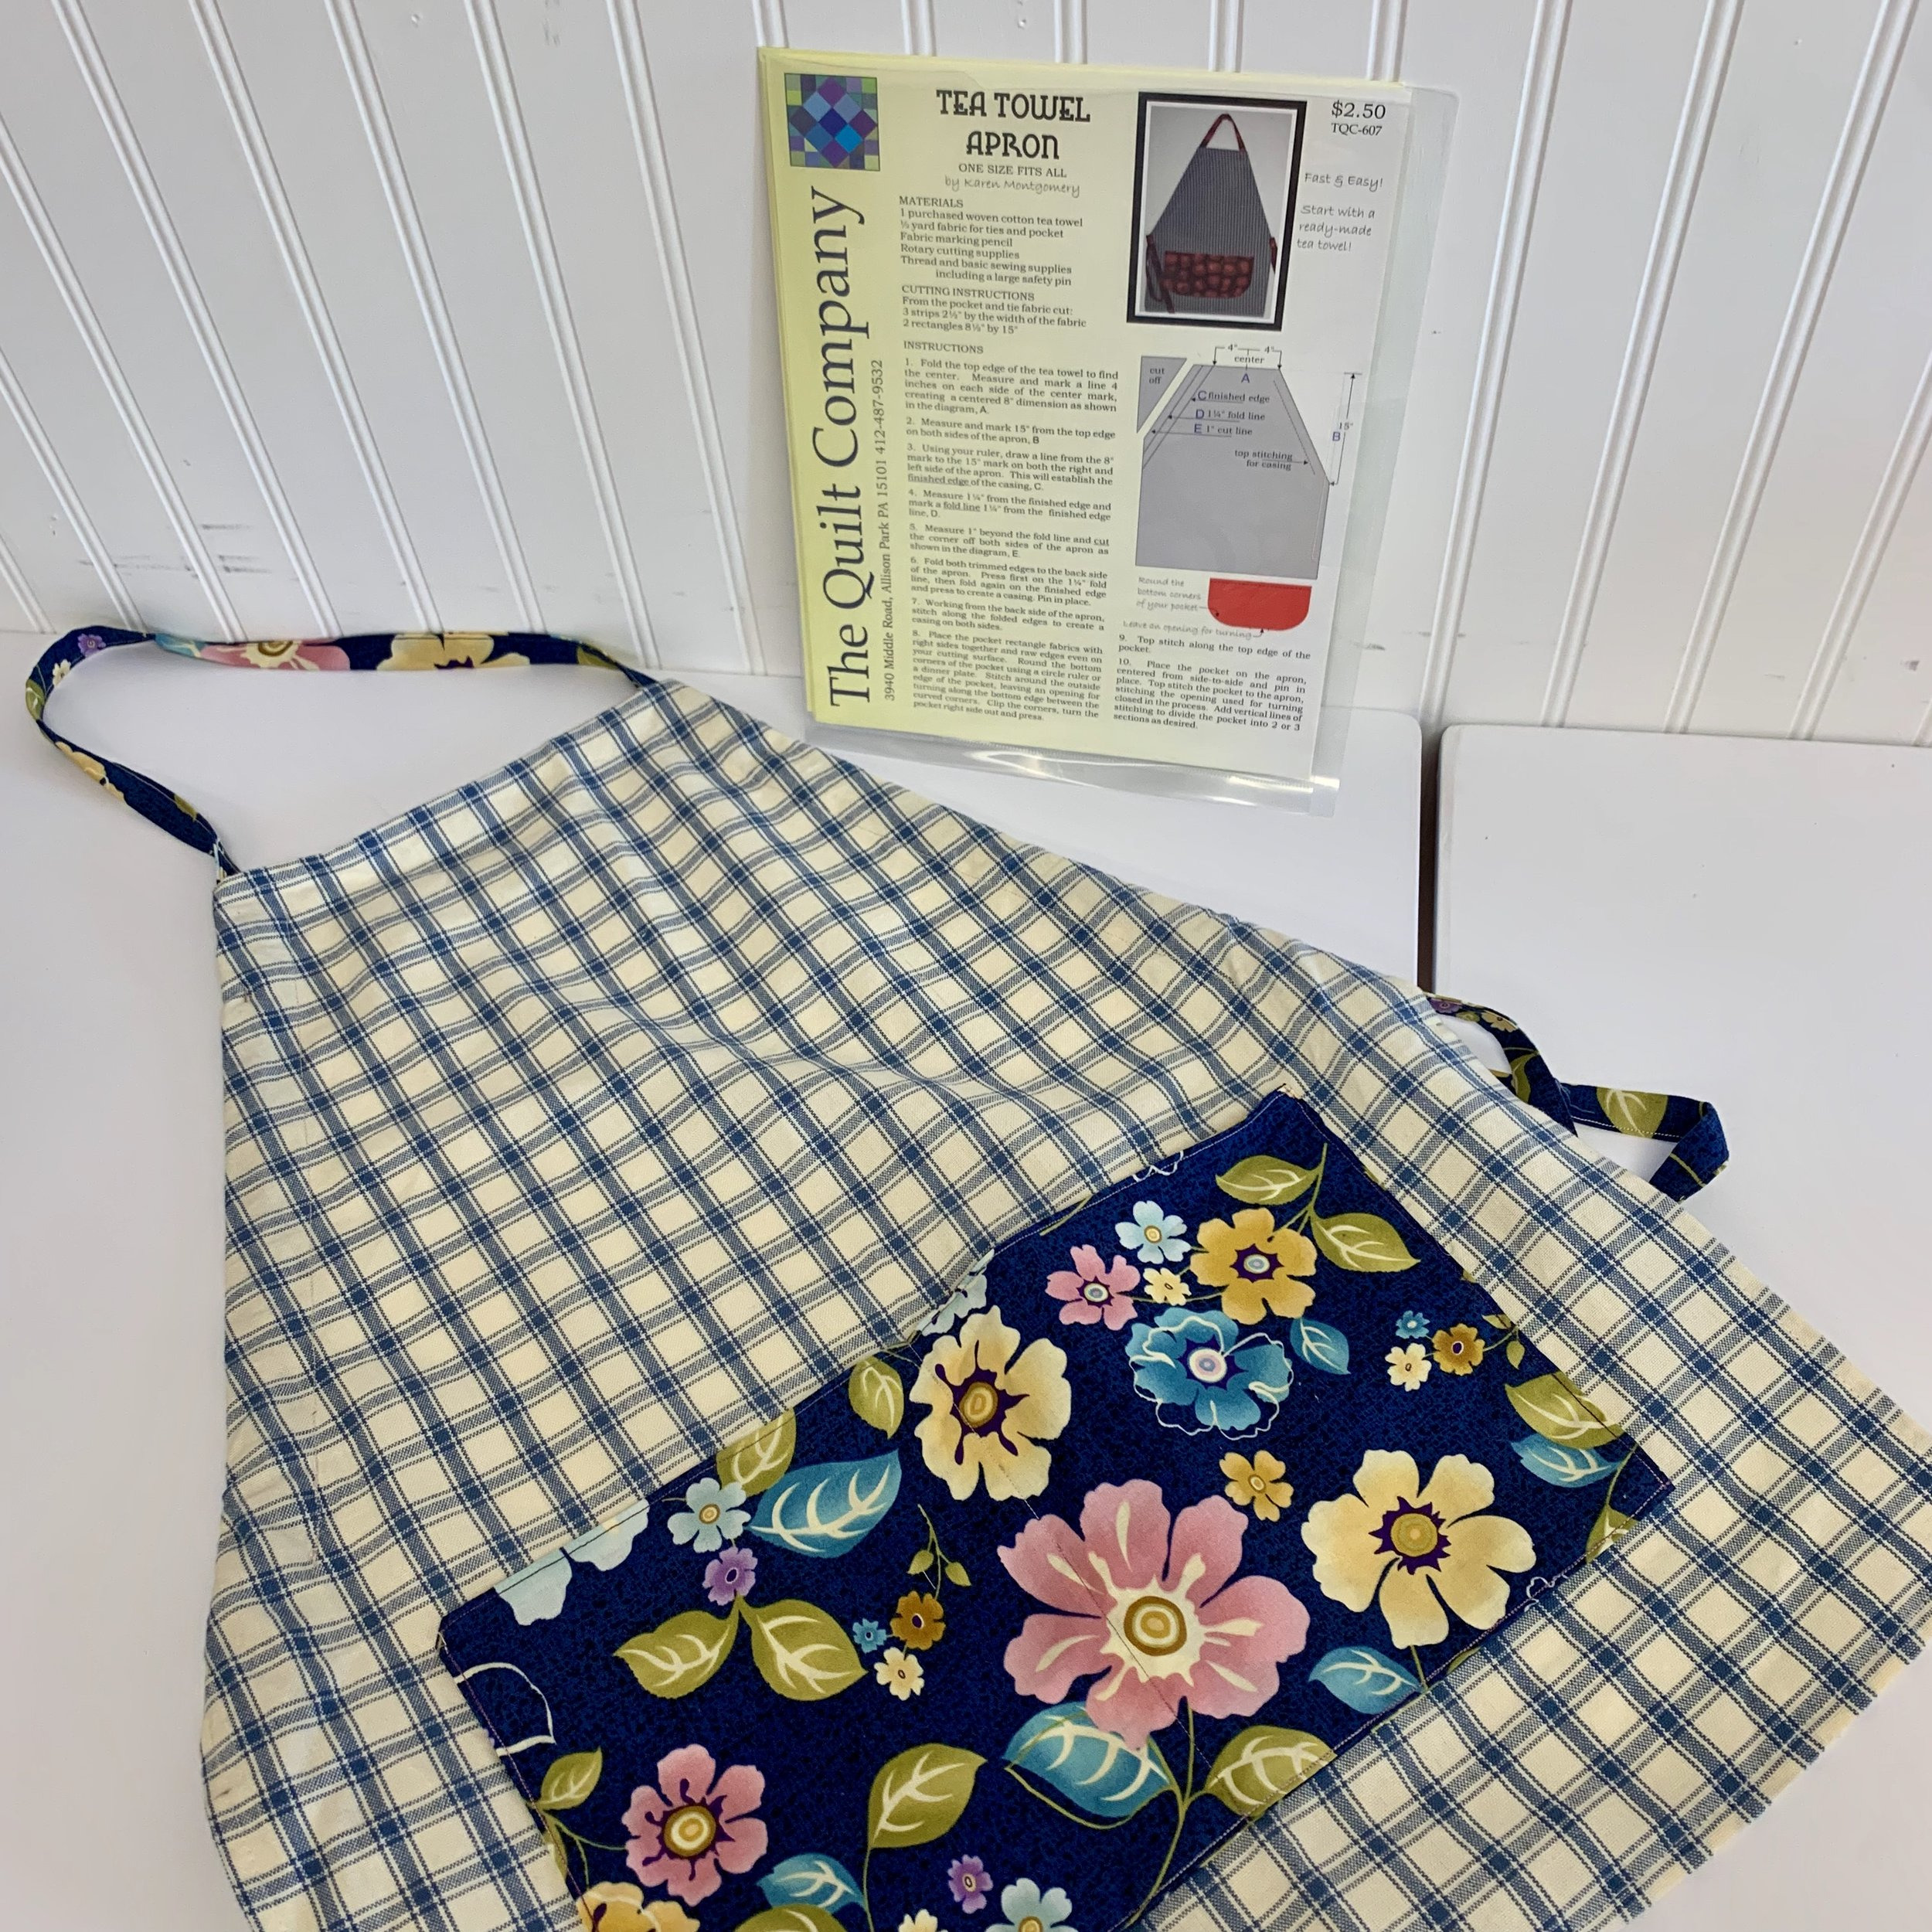 Apron Making - Available Thursday Afternoons 1pm-4pm